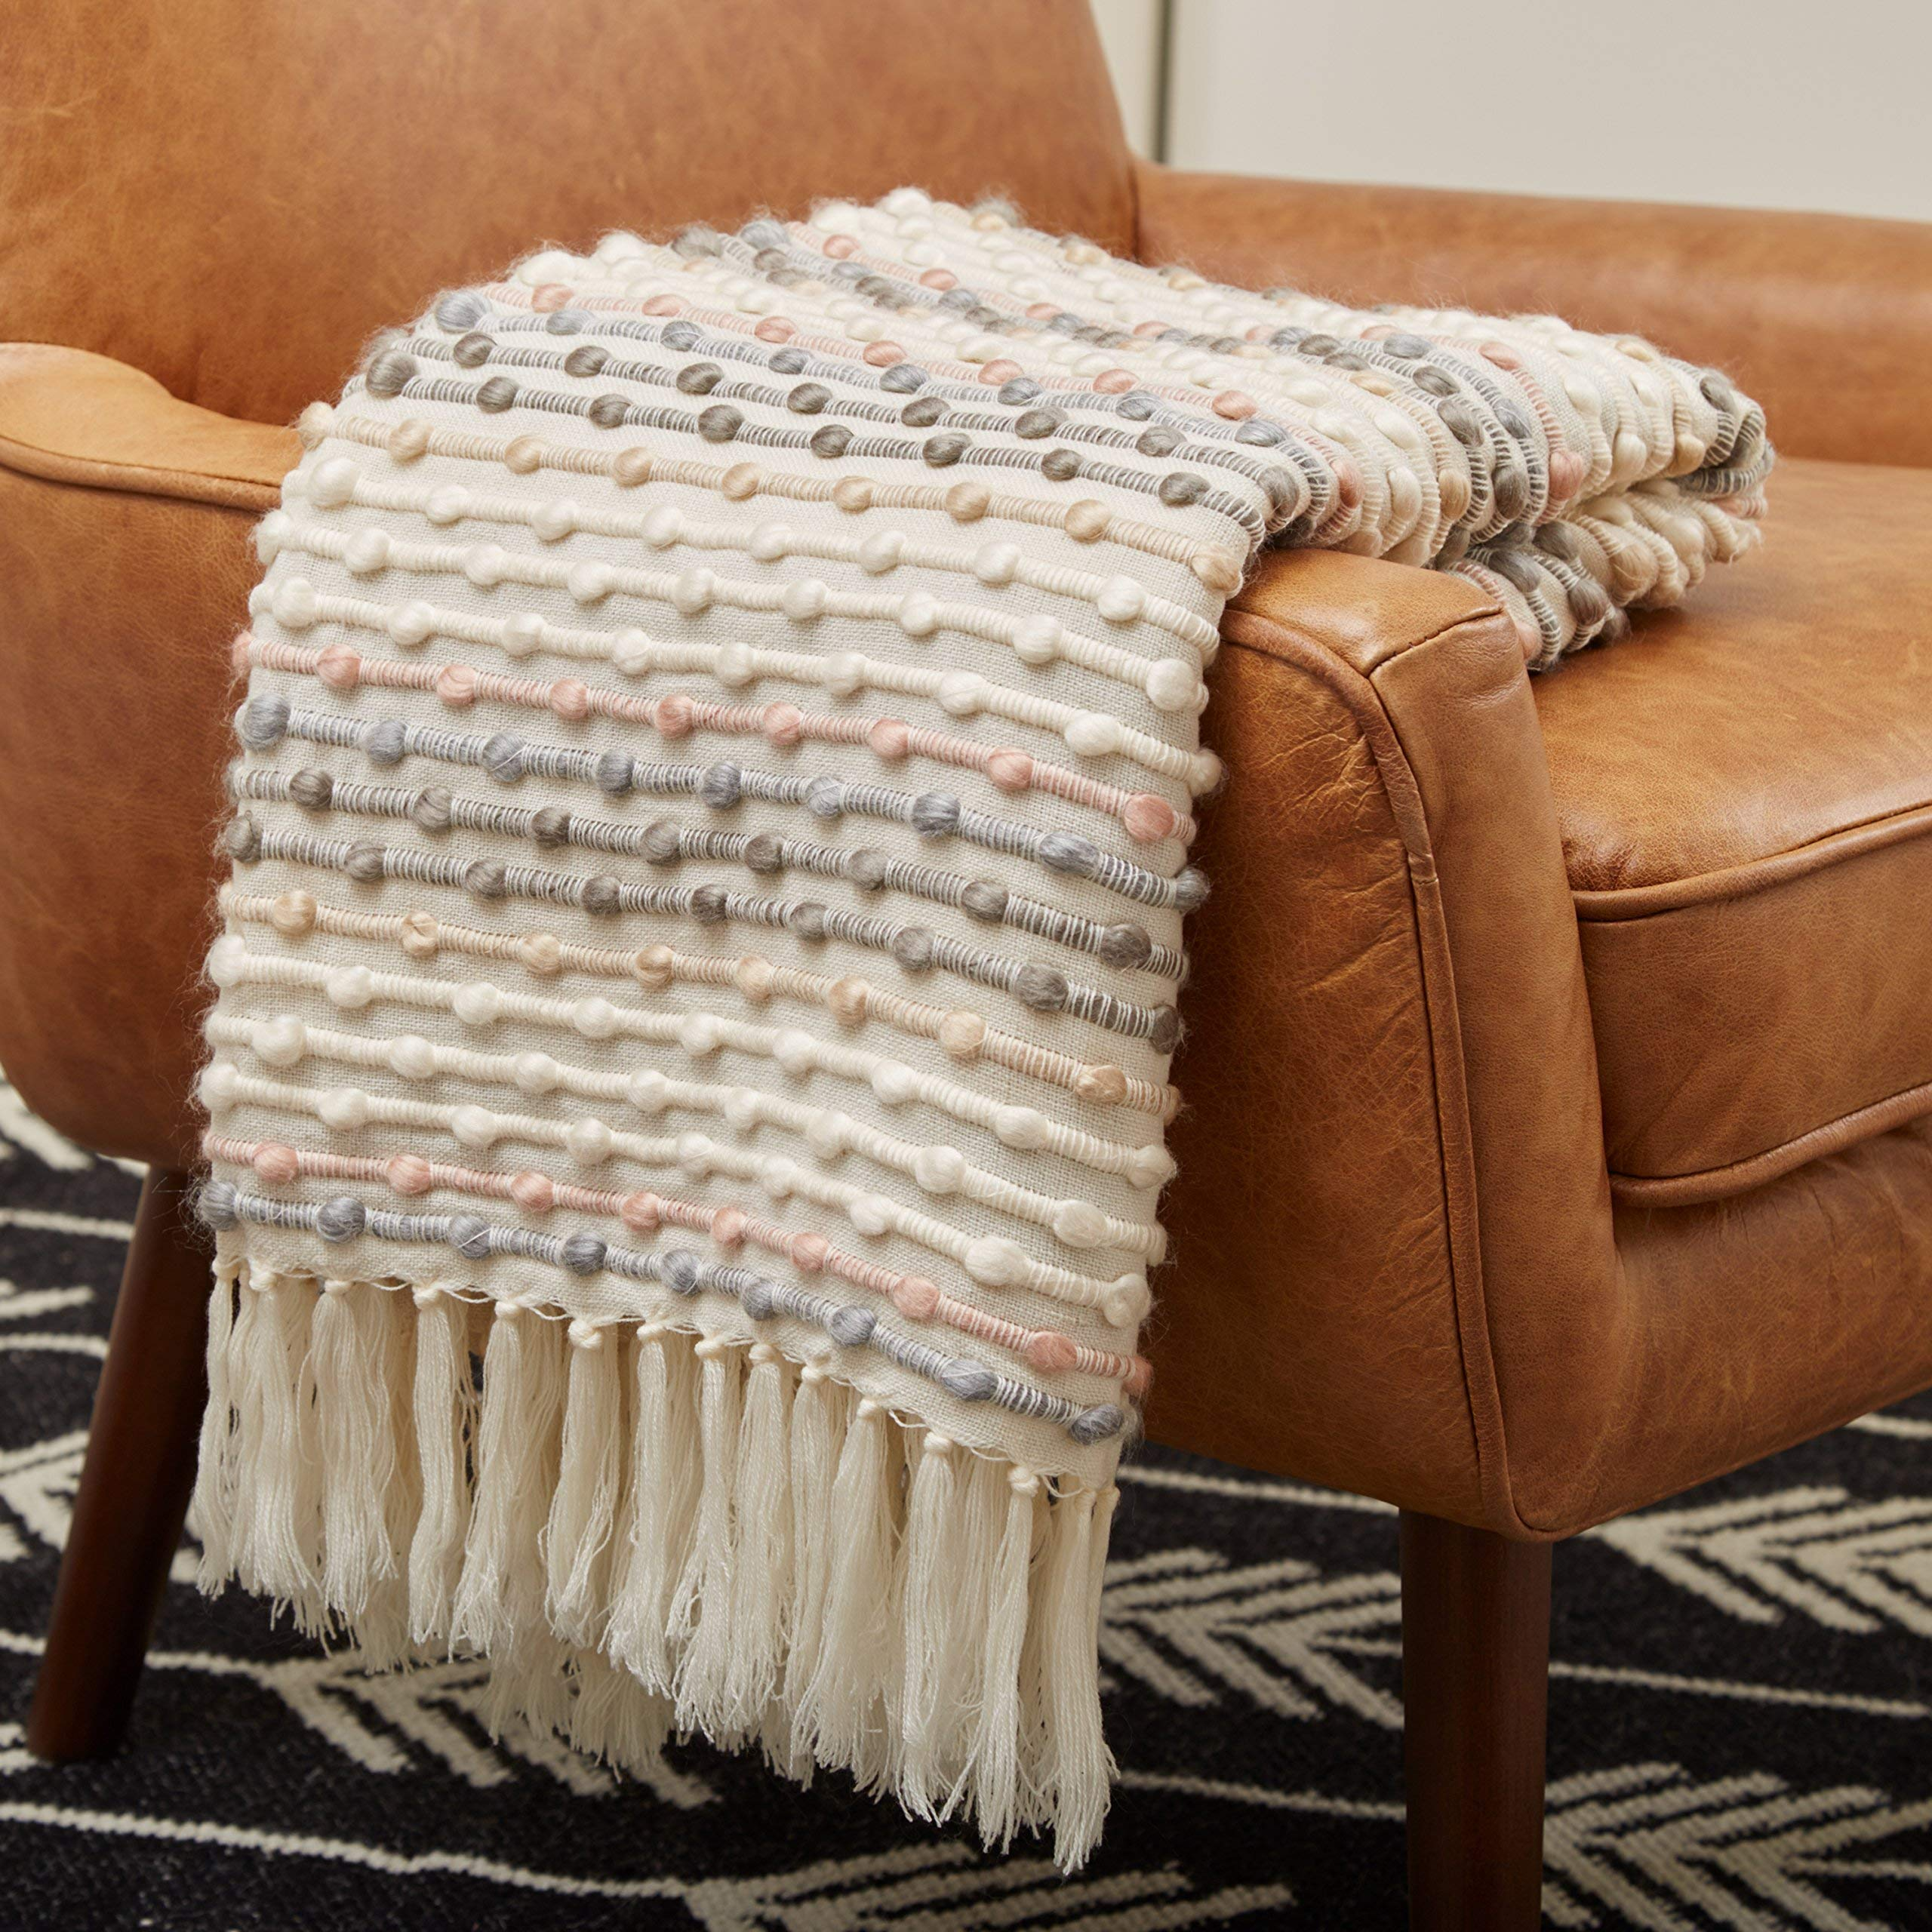 Rivet Bubble Textured Lightweight Decorative Fringe Throw Blanket, 48'' x 60'', Grey and Cream